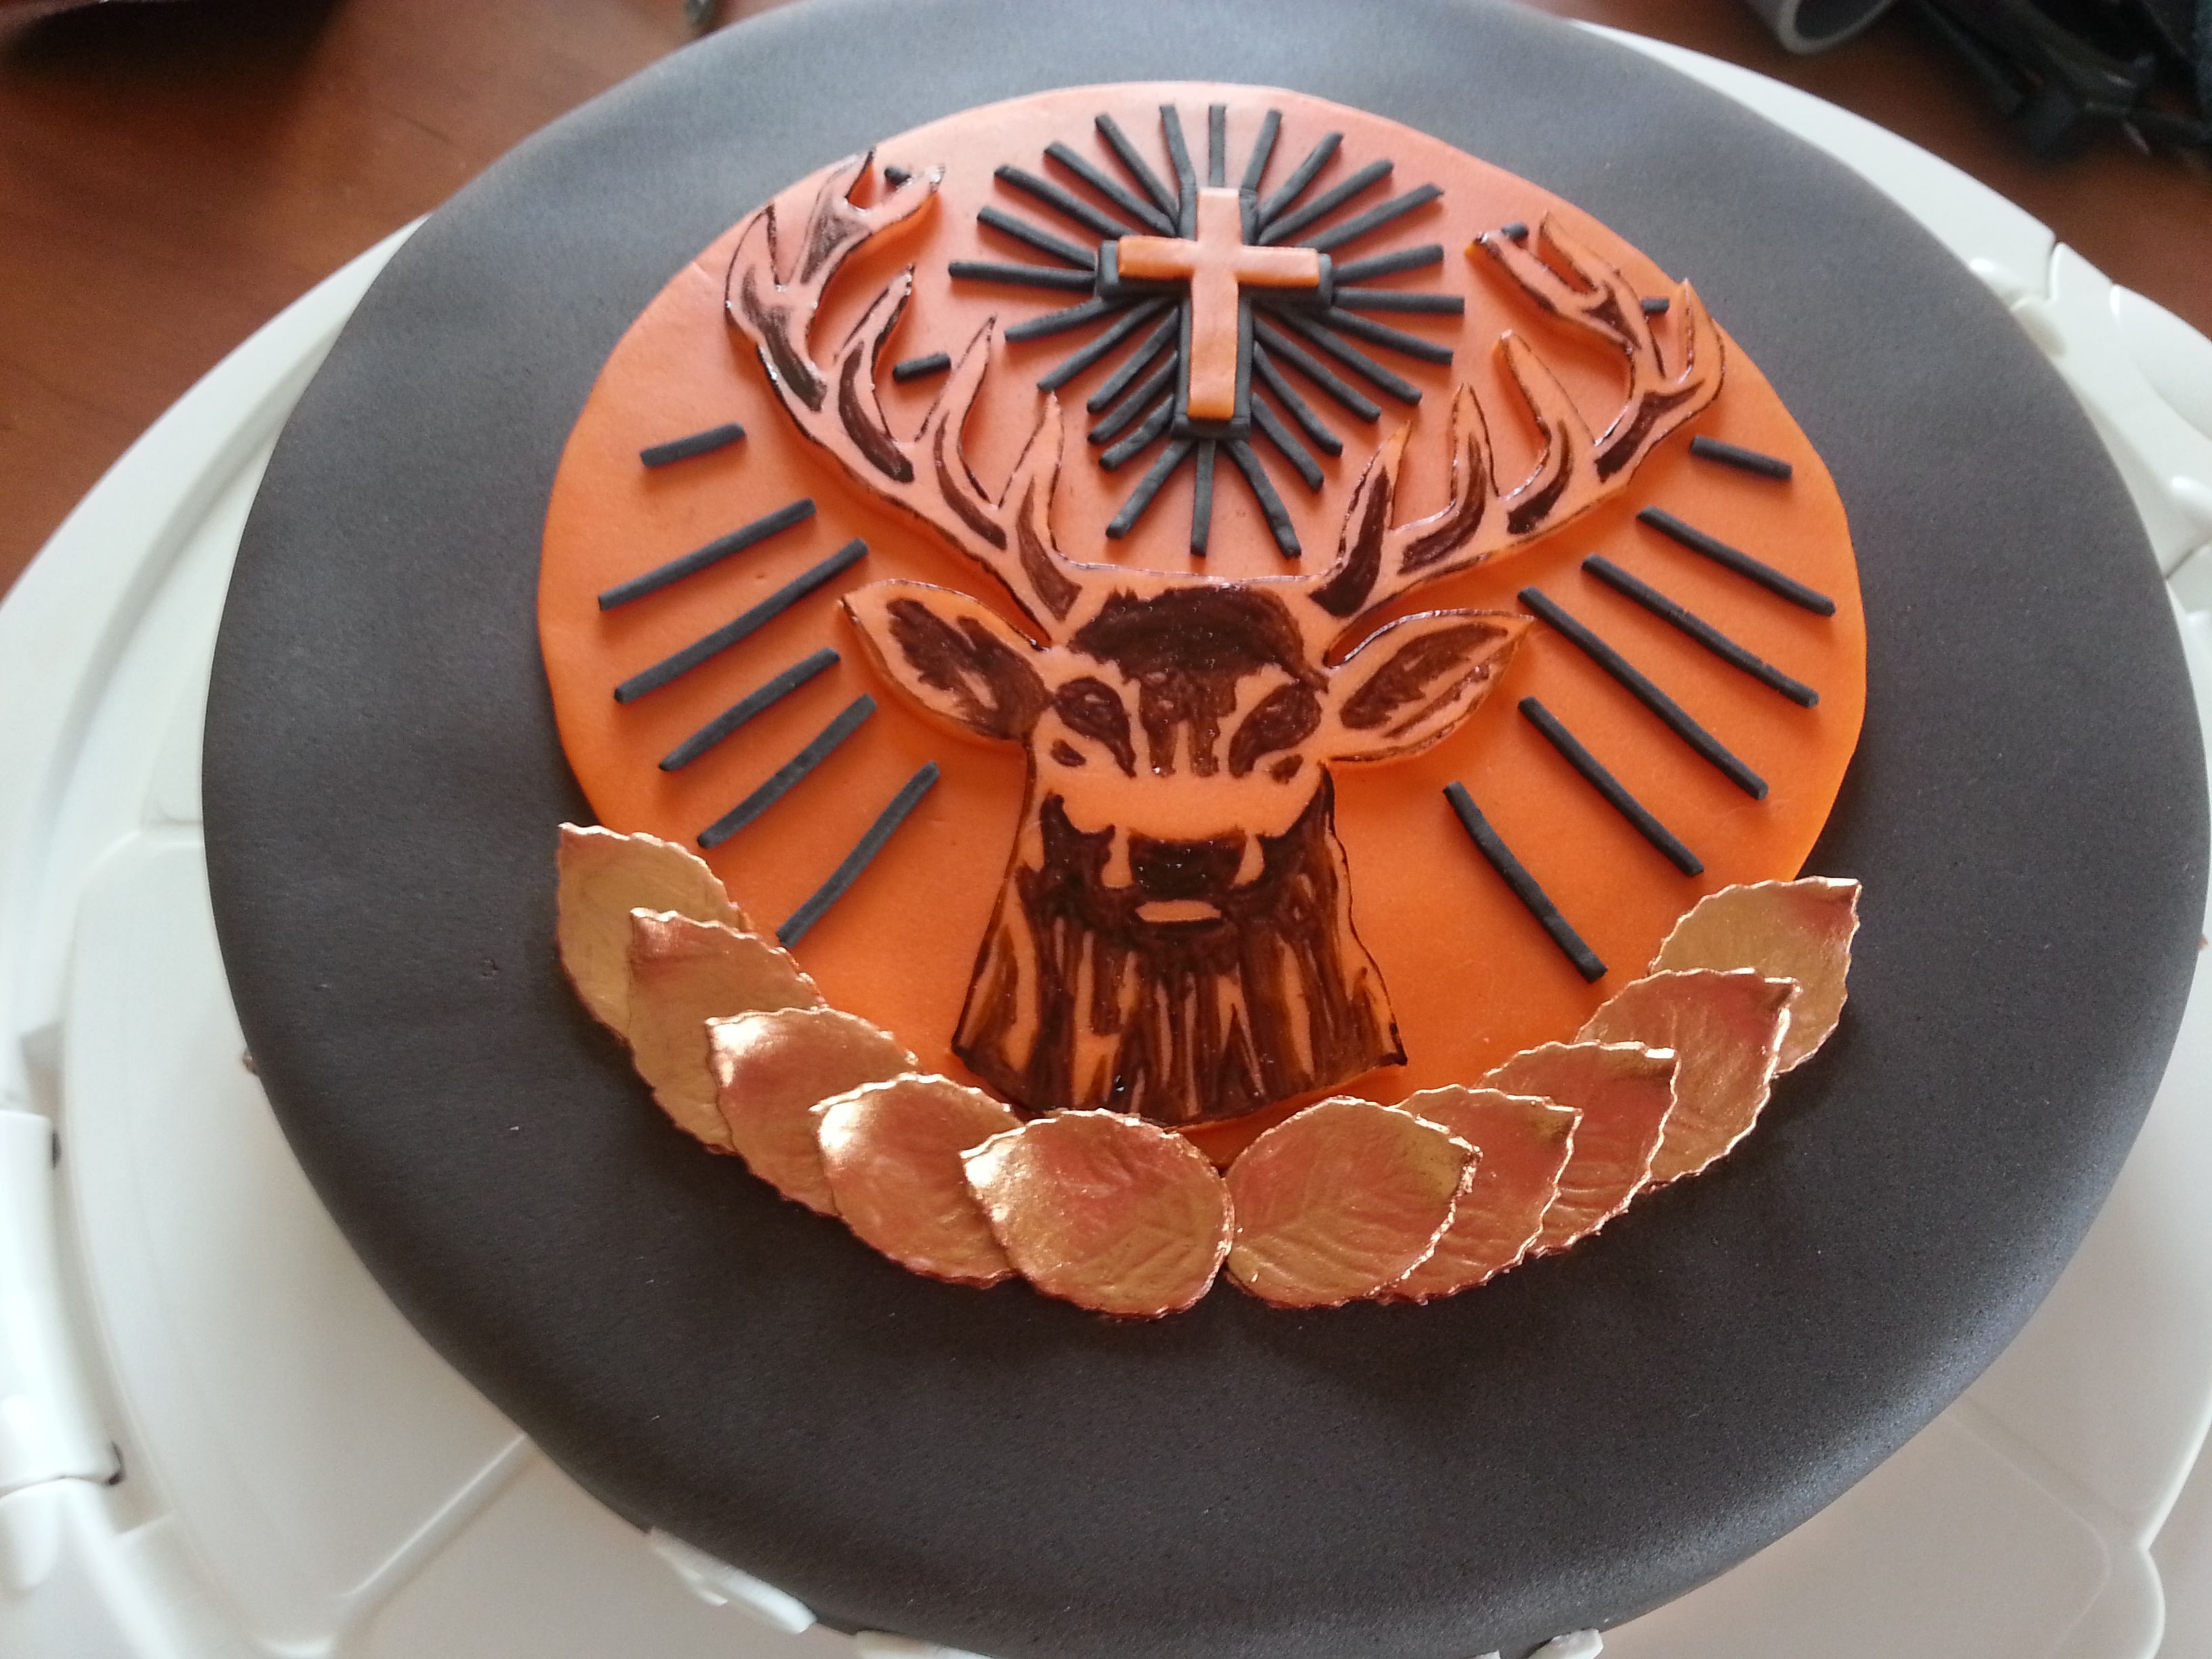 Jagermeister cake | Party cakes, Cookie inspiration, Desserts